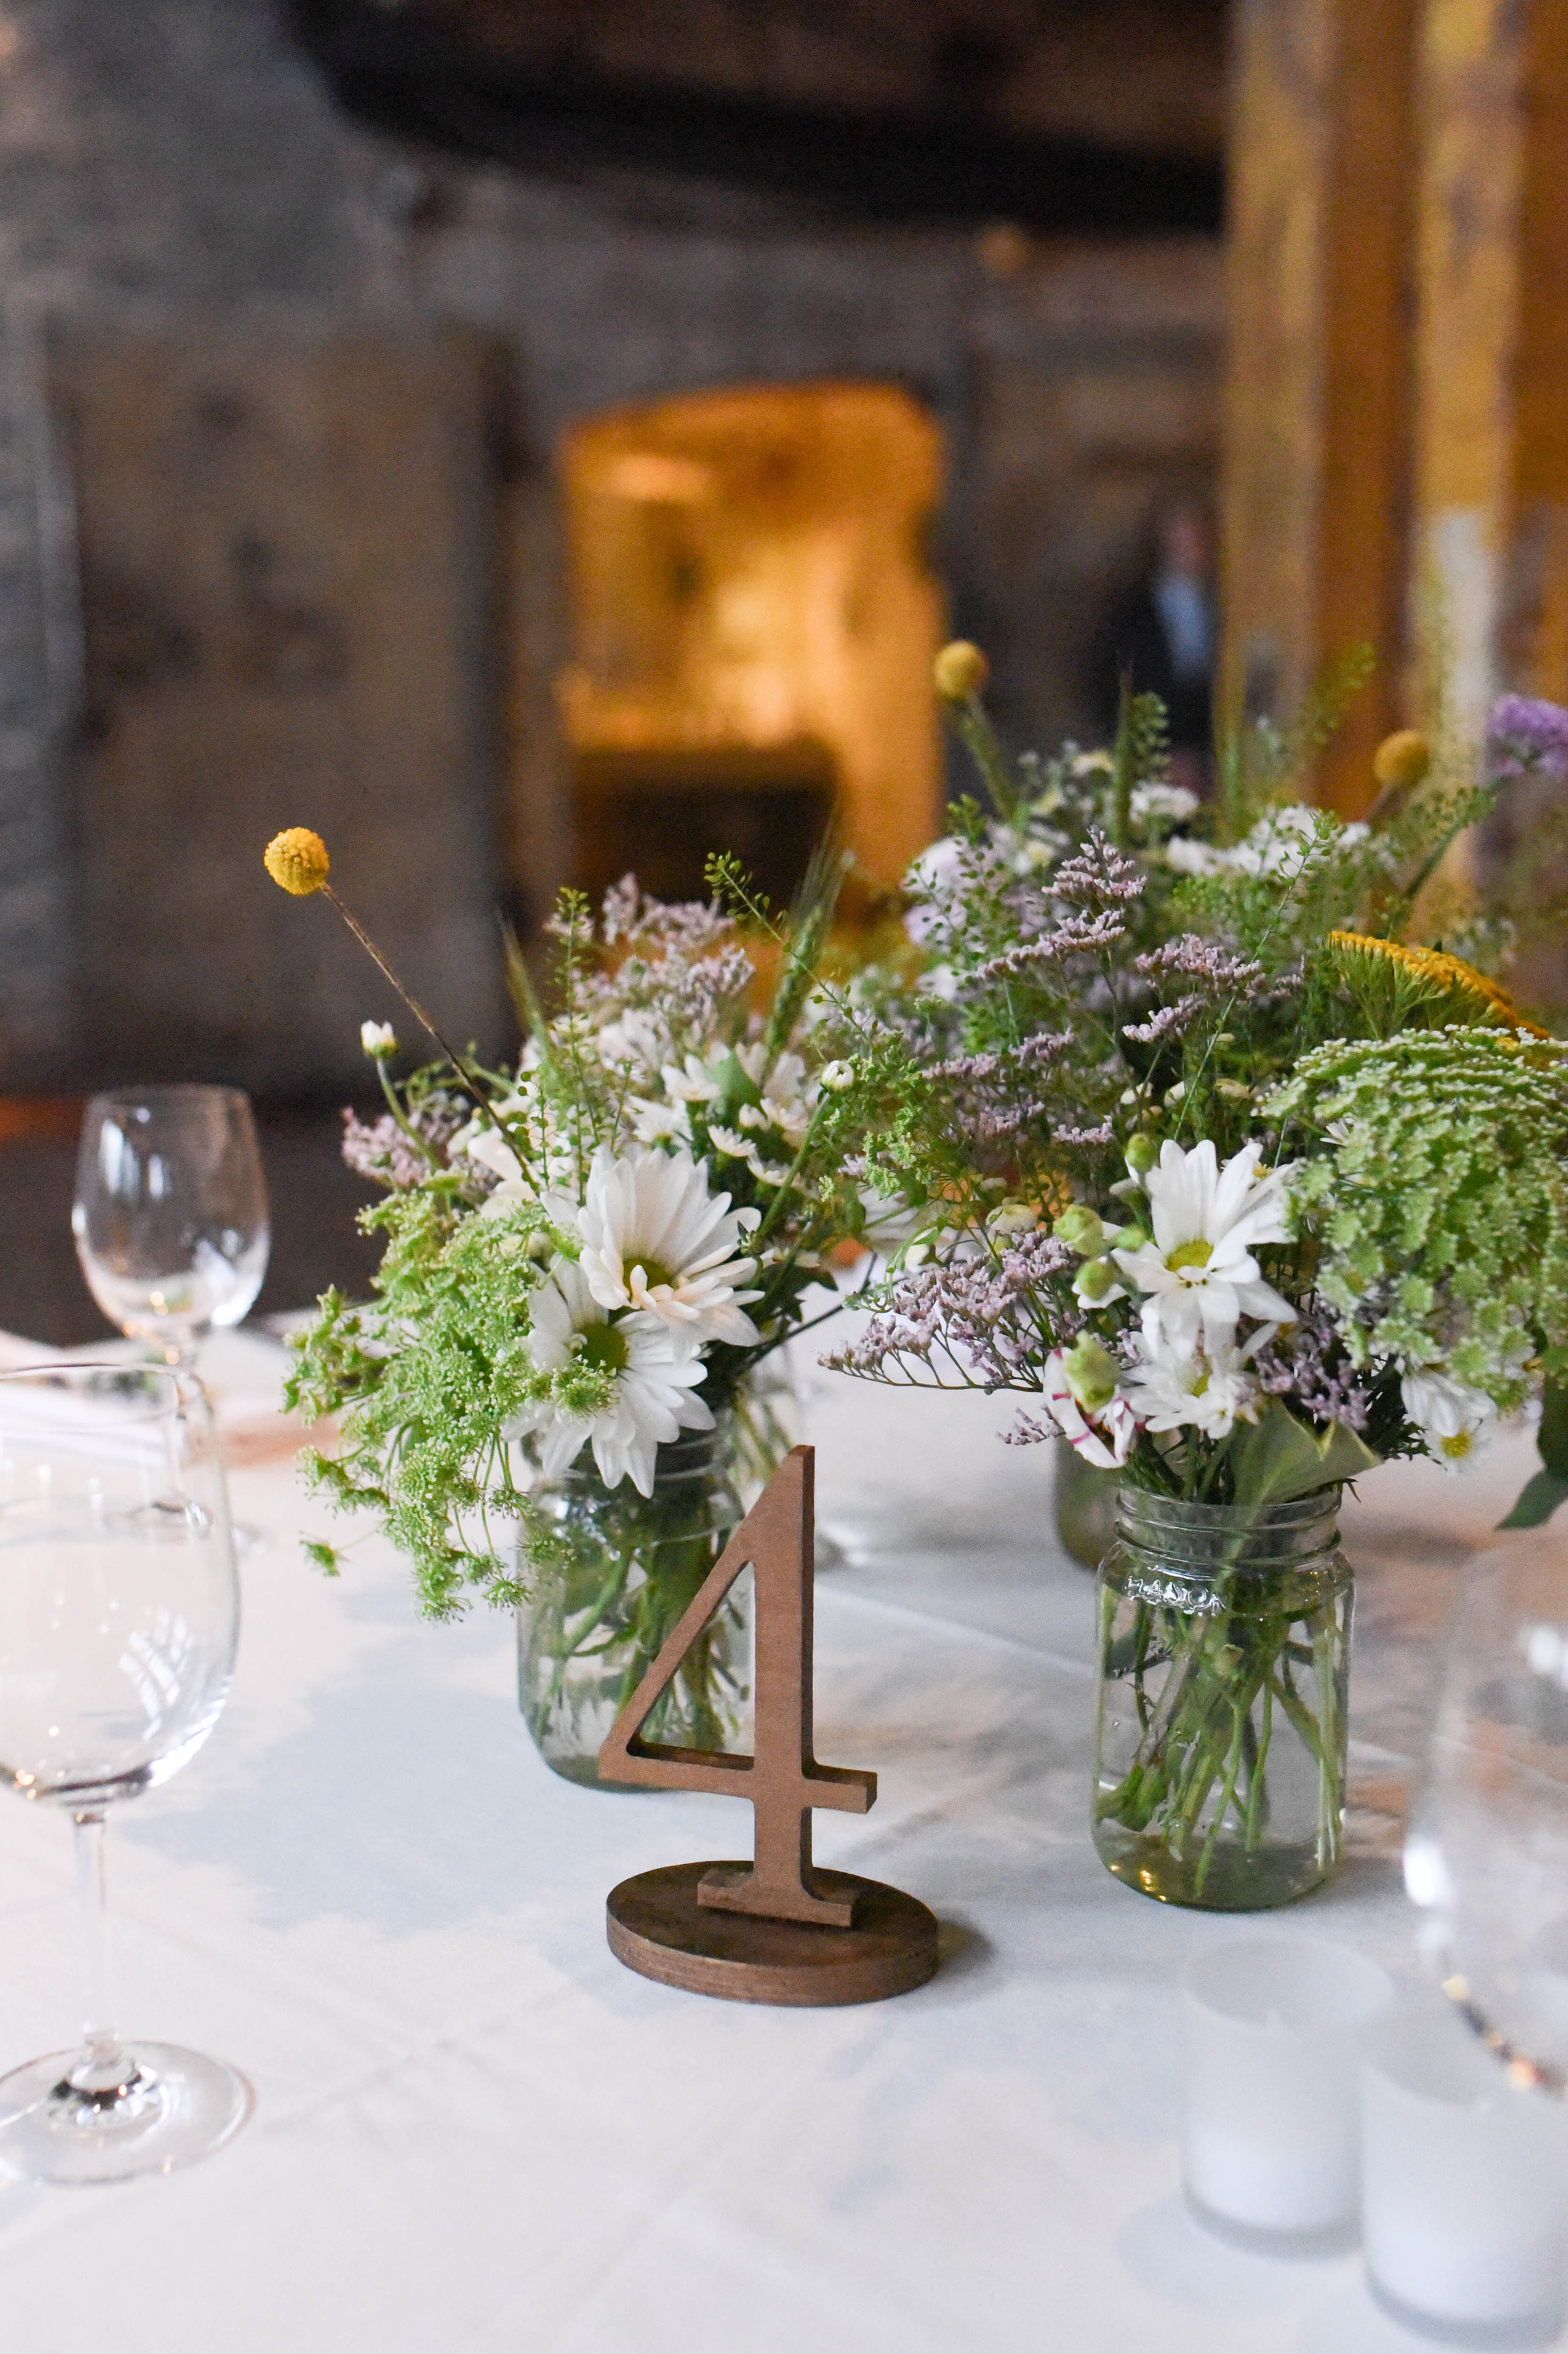 Yellow and lavender Wildflower centerpiece in rustic mason jar. Pale yellow, lavender, blush pink and orange flowers. Underrated and beautiful flowers.Greenpoint Loft wedding, Brooklyn. Flowers by Rosehip Social, Graham Ave, Brooklyn.